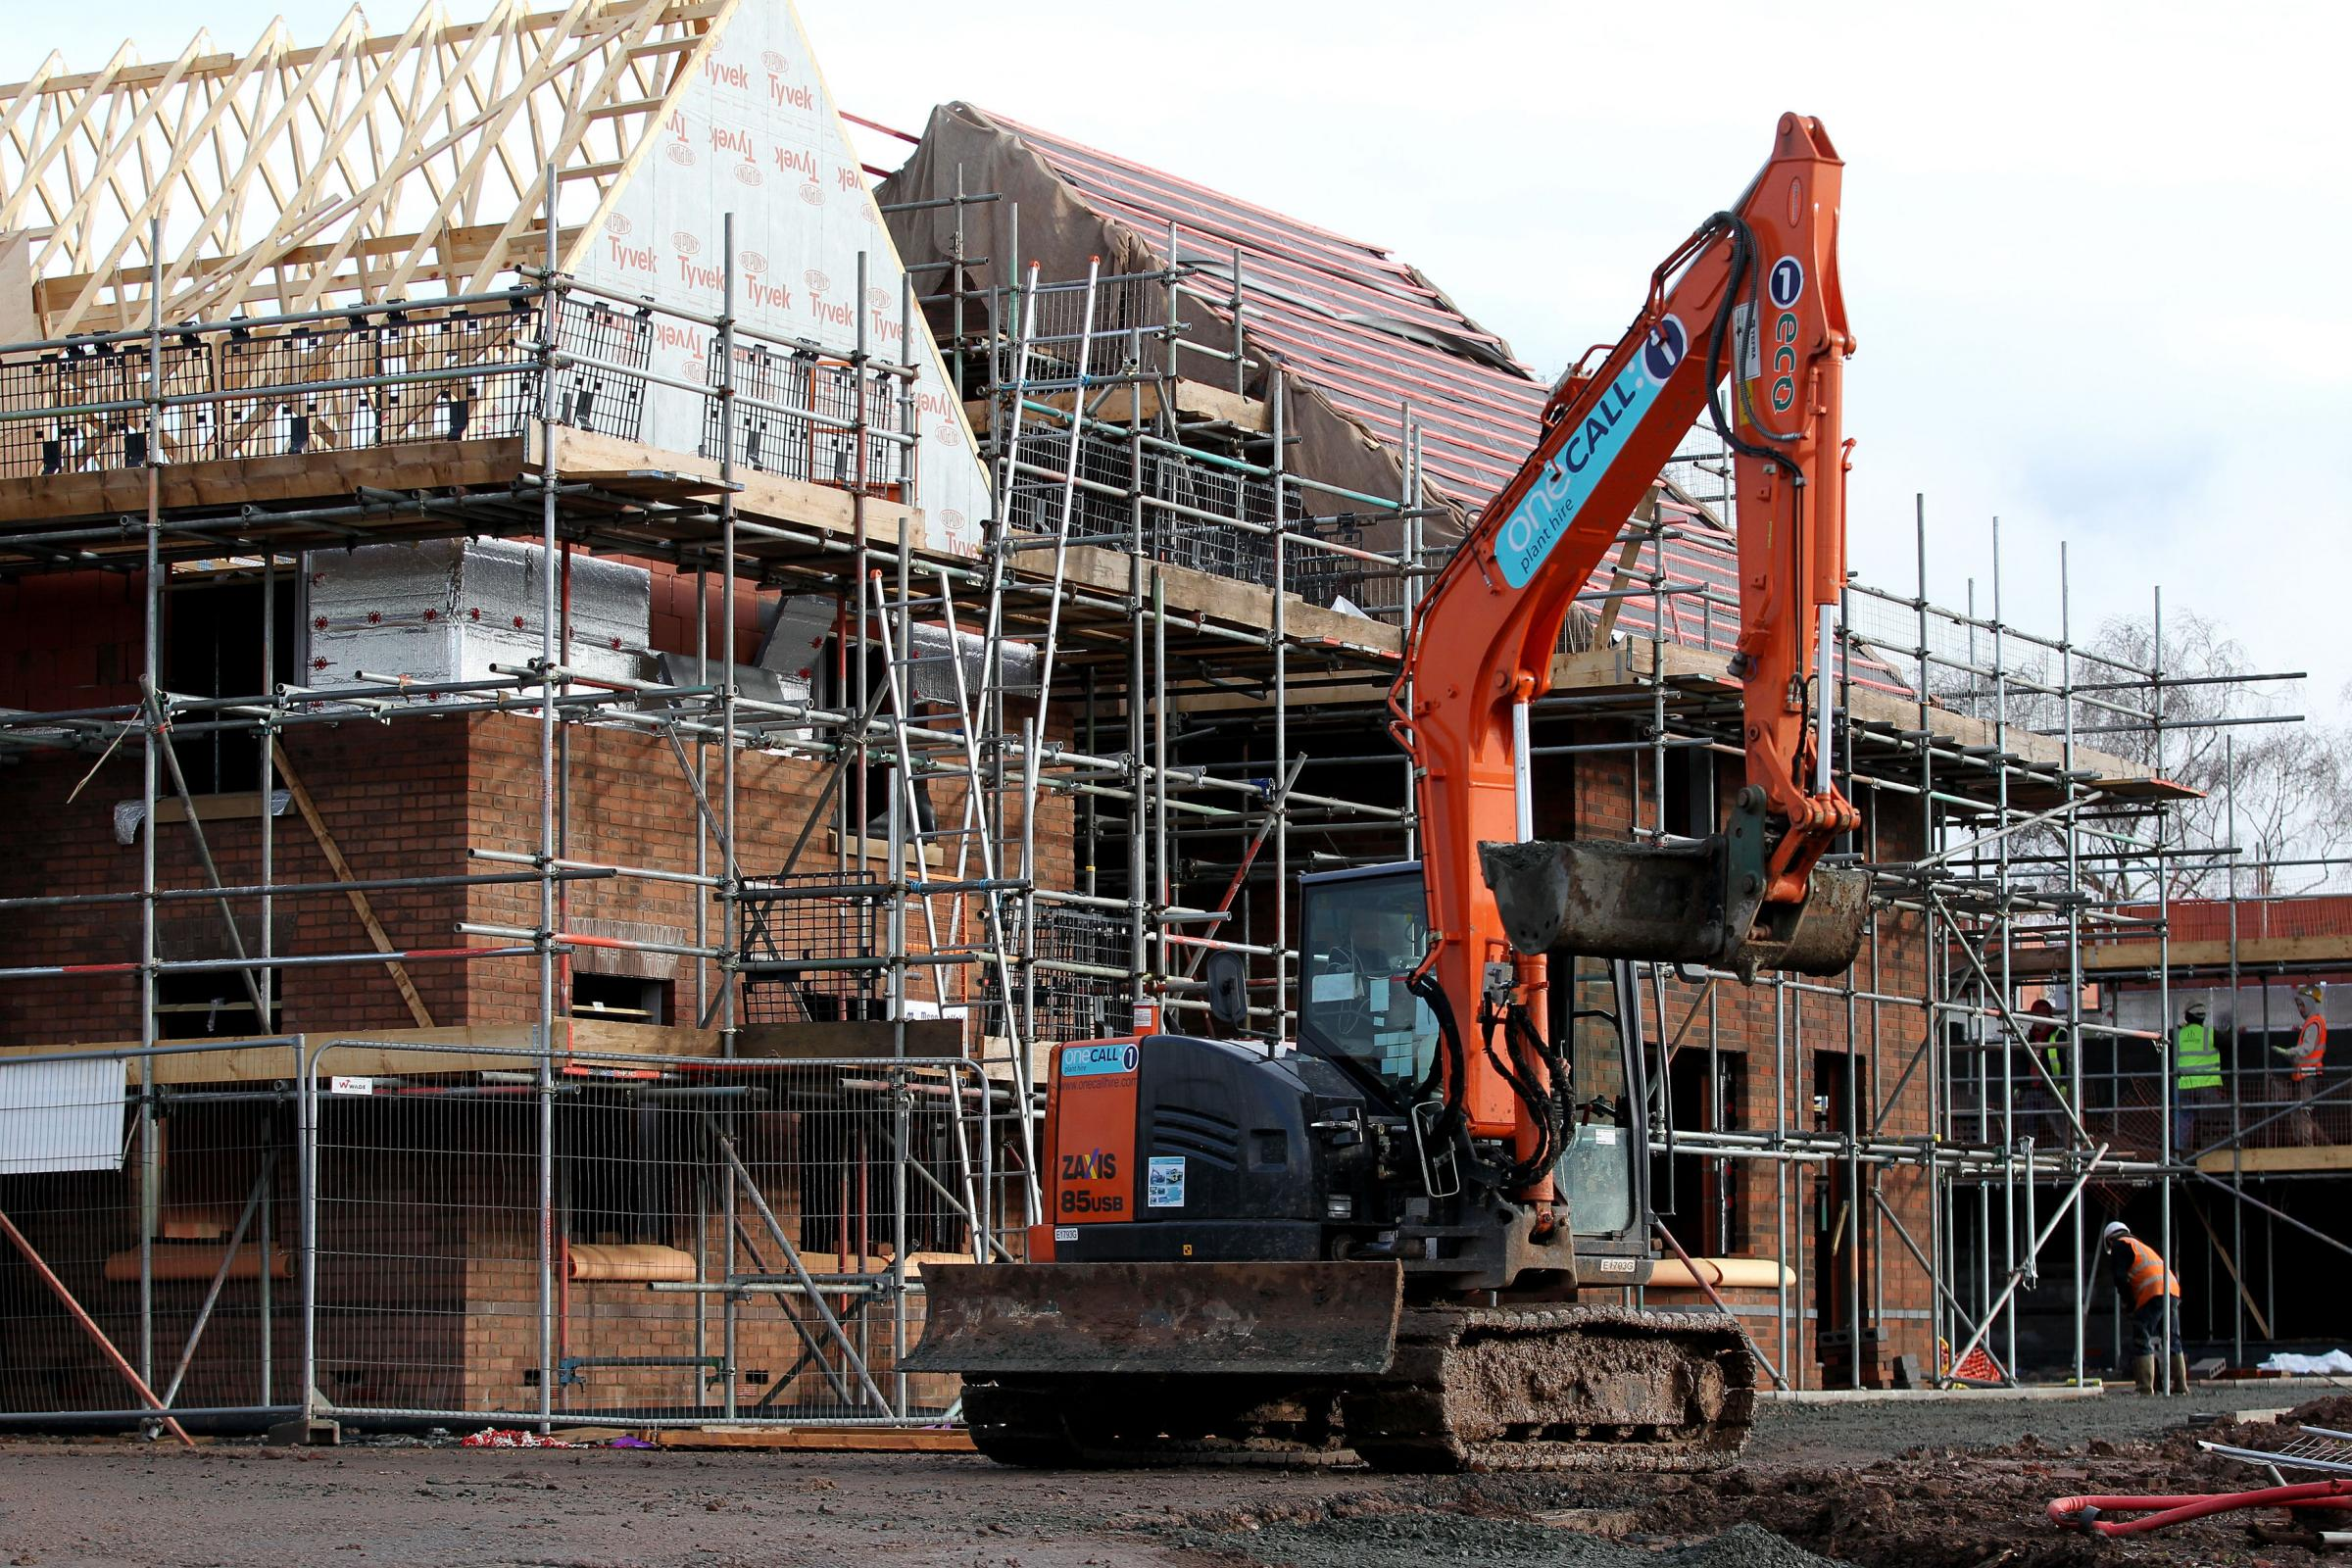 The council has set a target to build 1,000 new homes